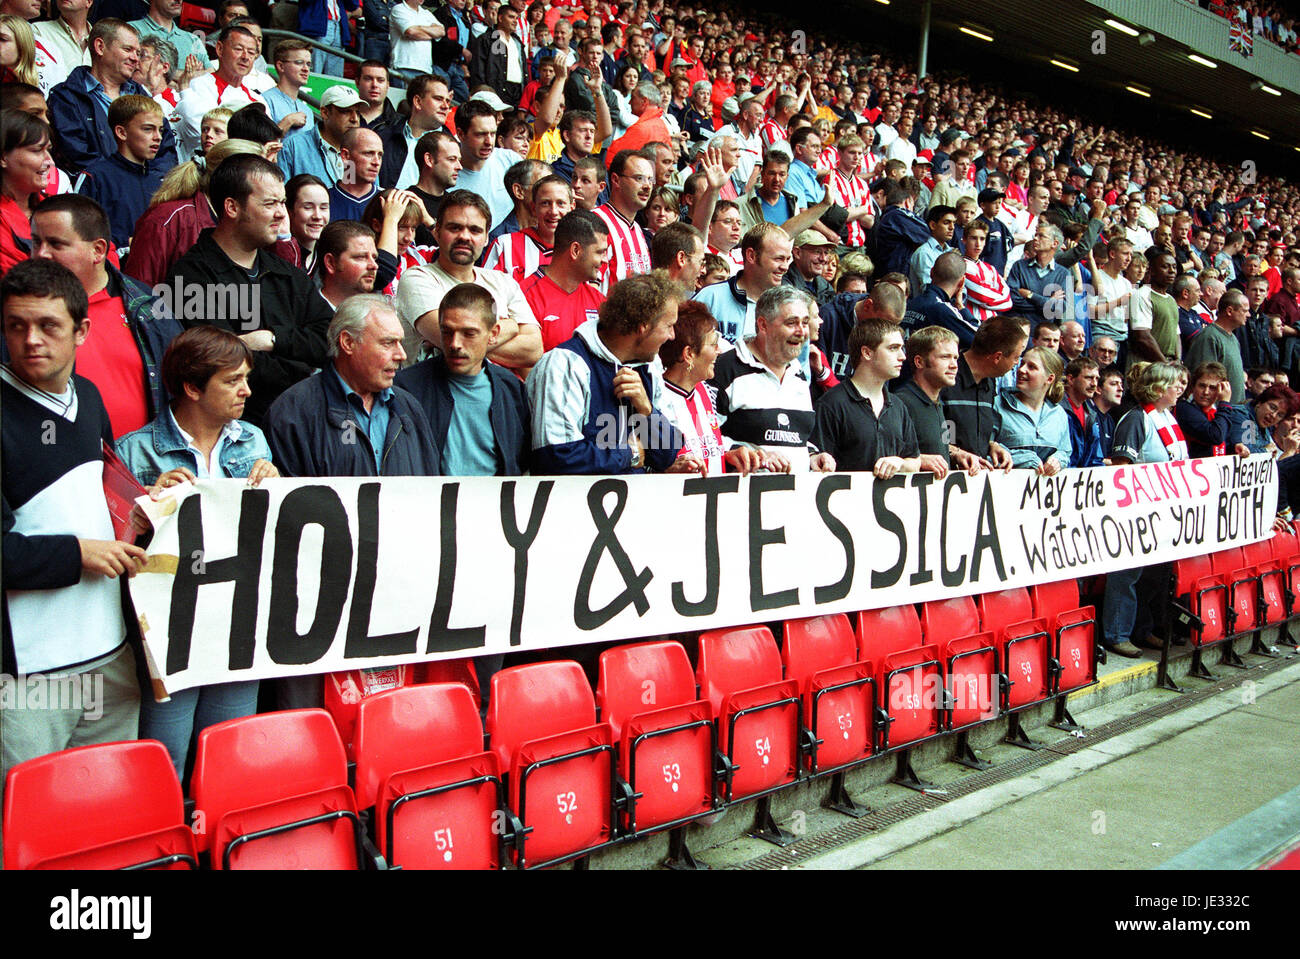 Hommage an HOLLY & JESSICA LIVERPOOL V SOUTHAMPTON Anfield Road LIVERPOOL ENGLAND 24. August 2002 Stockbild